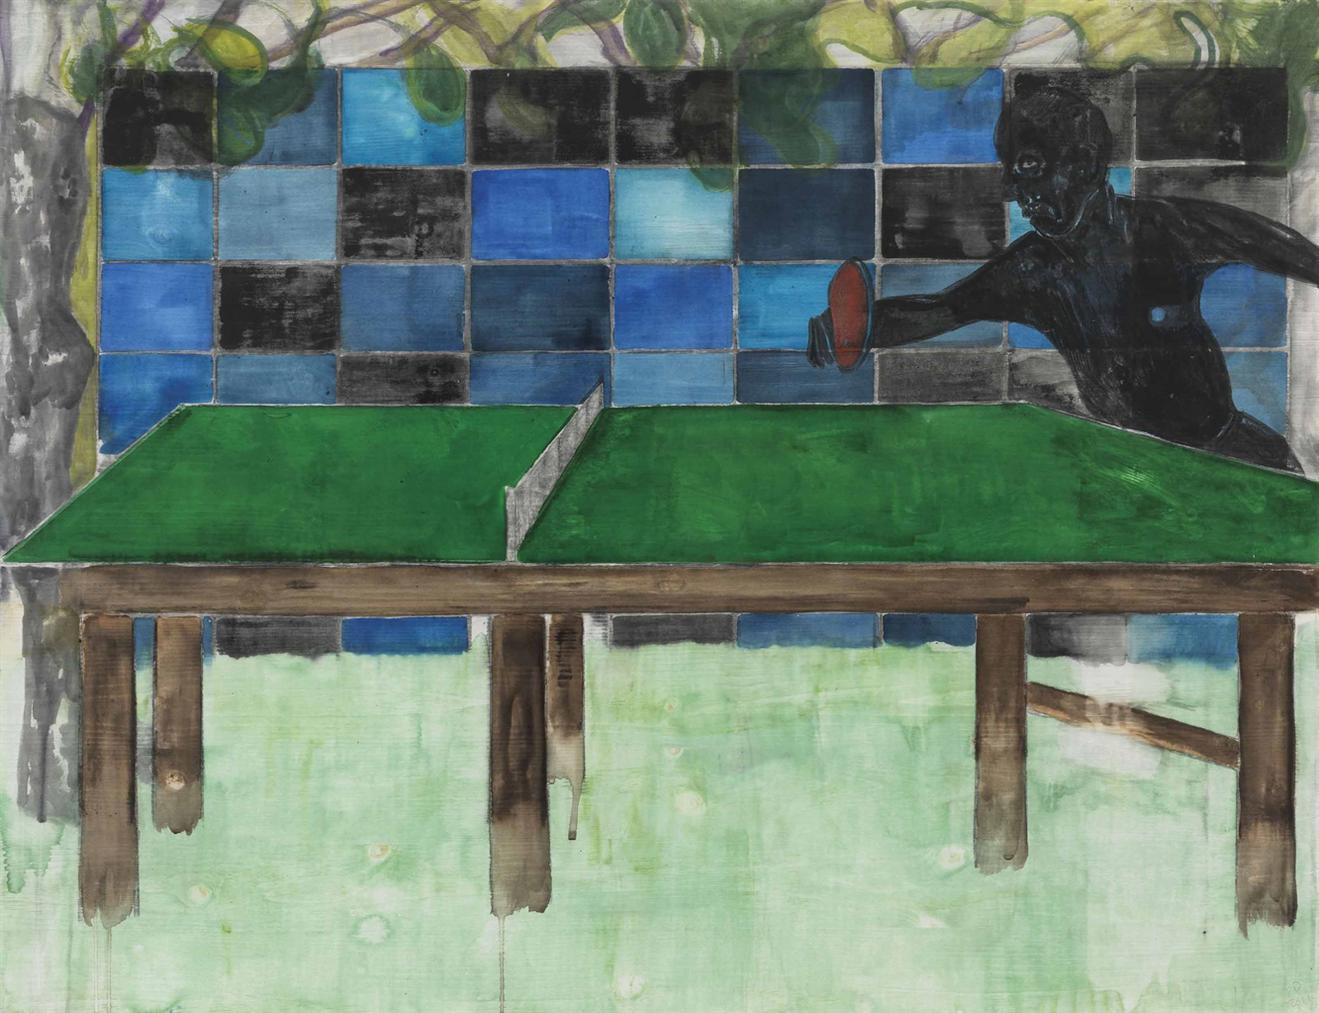 Peter Doig-Untitled, Ping Pong Player-2011